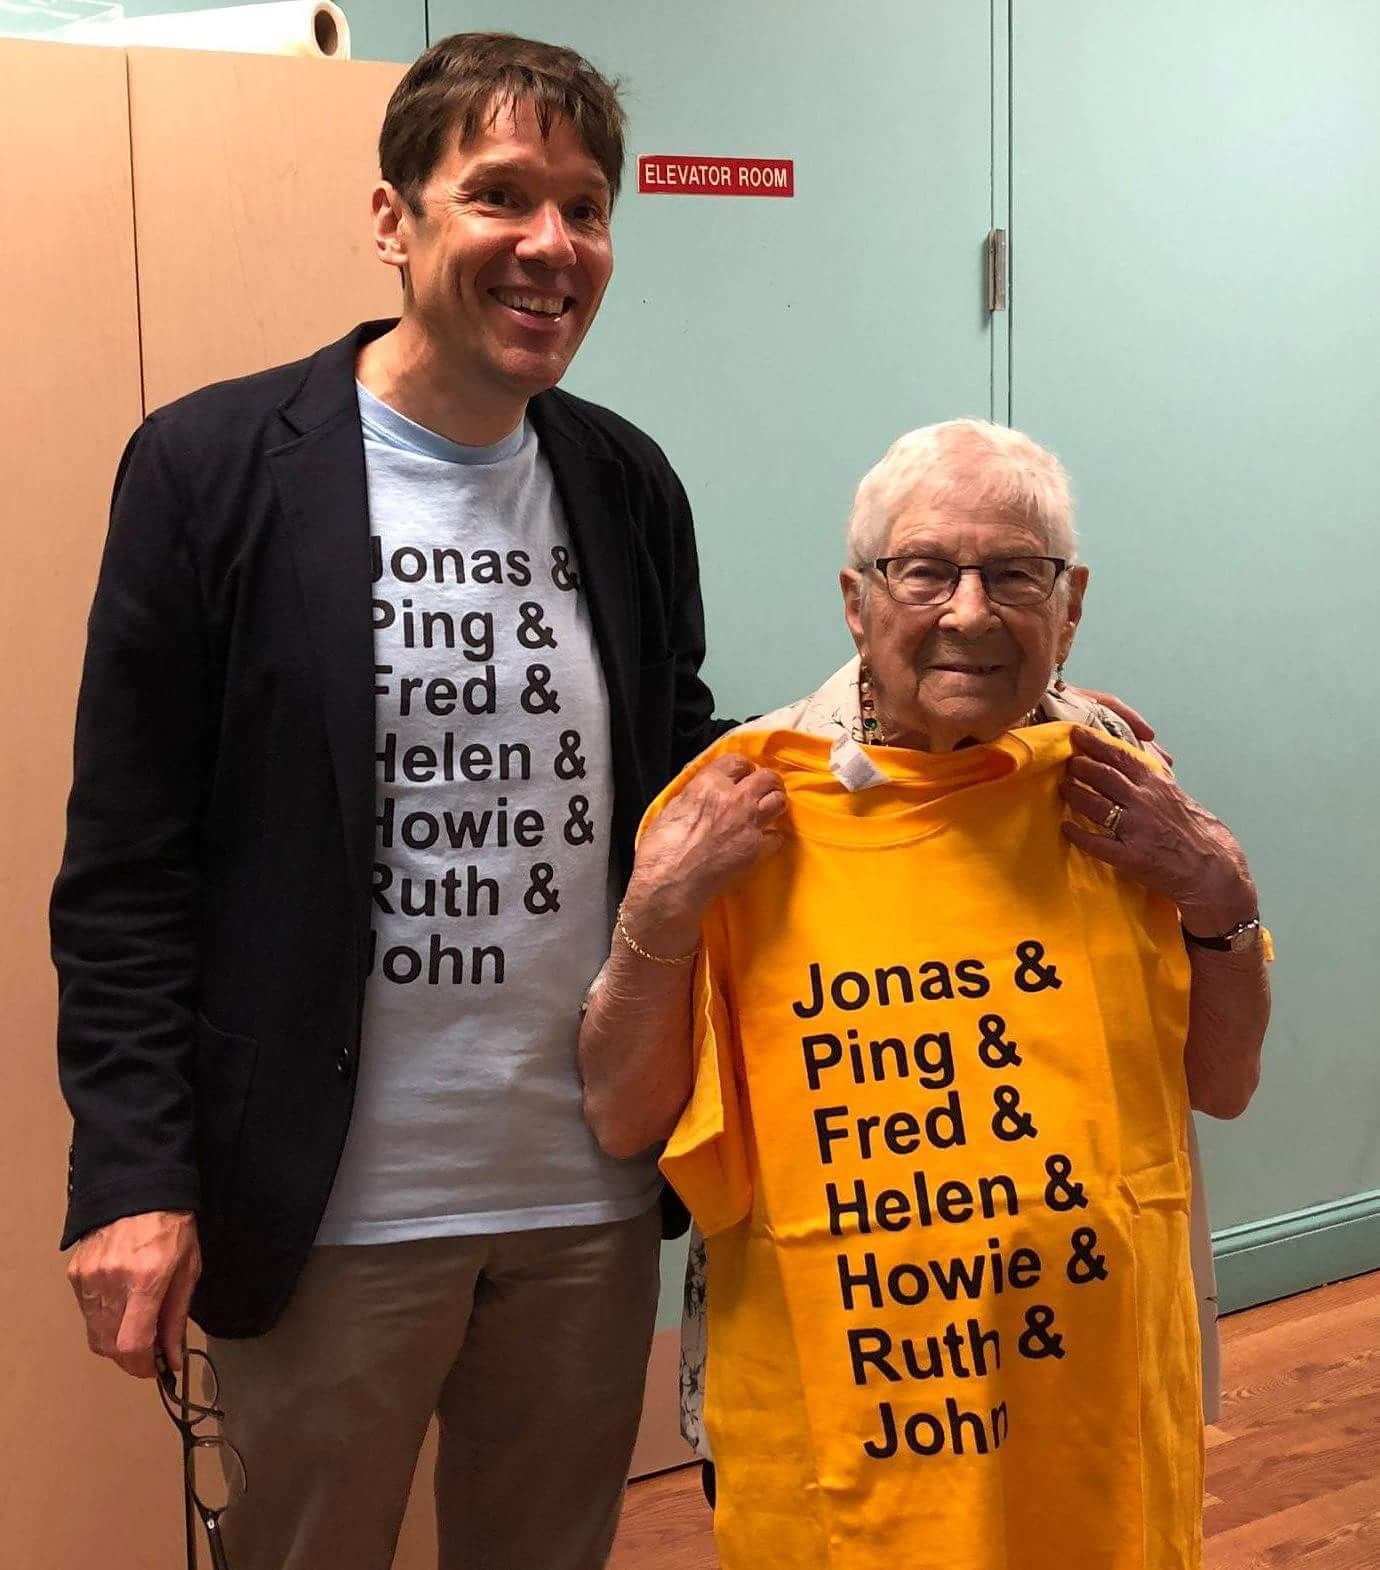 John Leland and Ruth Willig